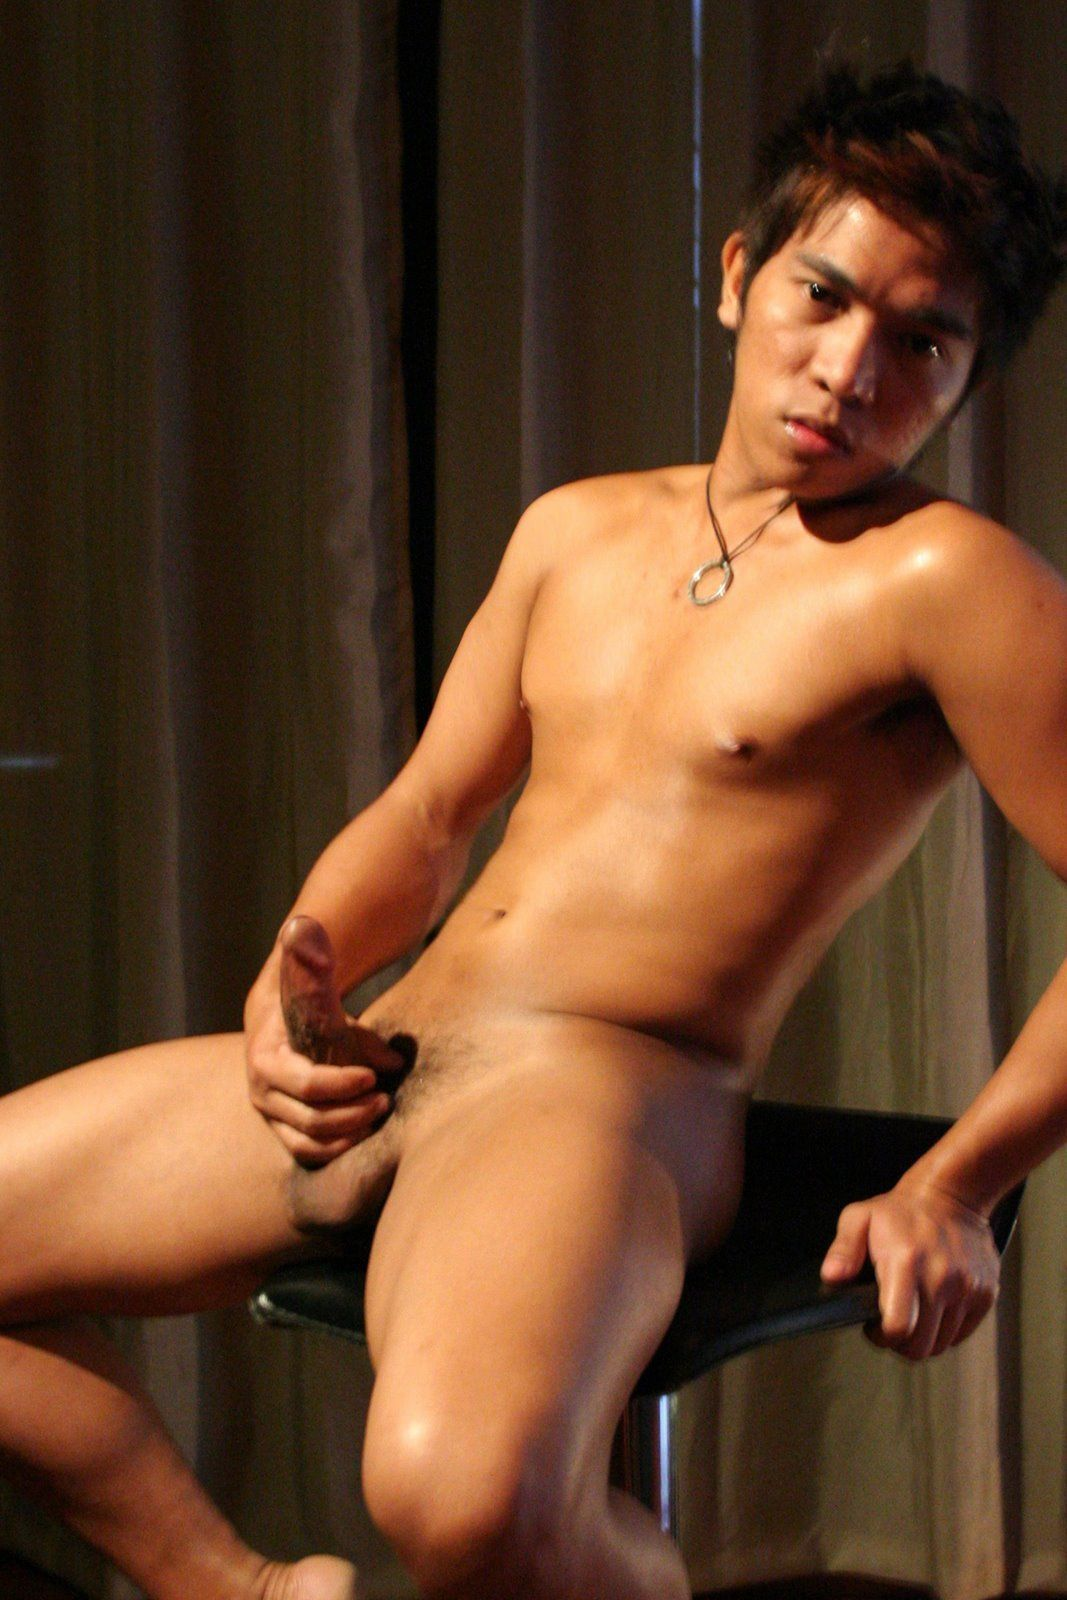 Ratman reccomend Pilipino man nude photo